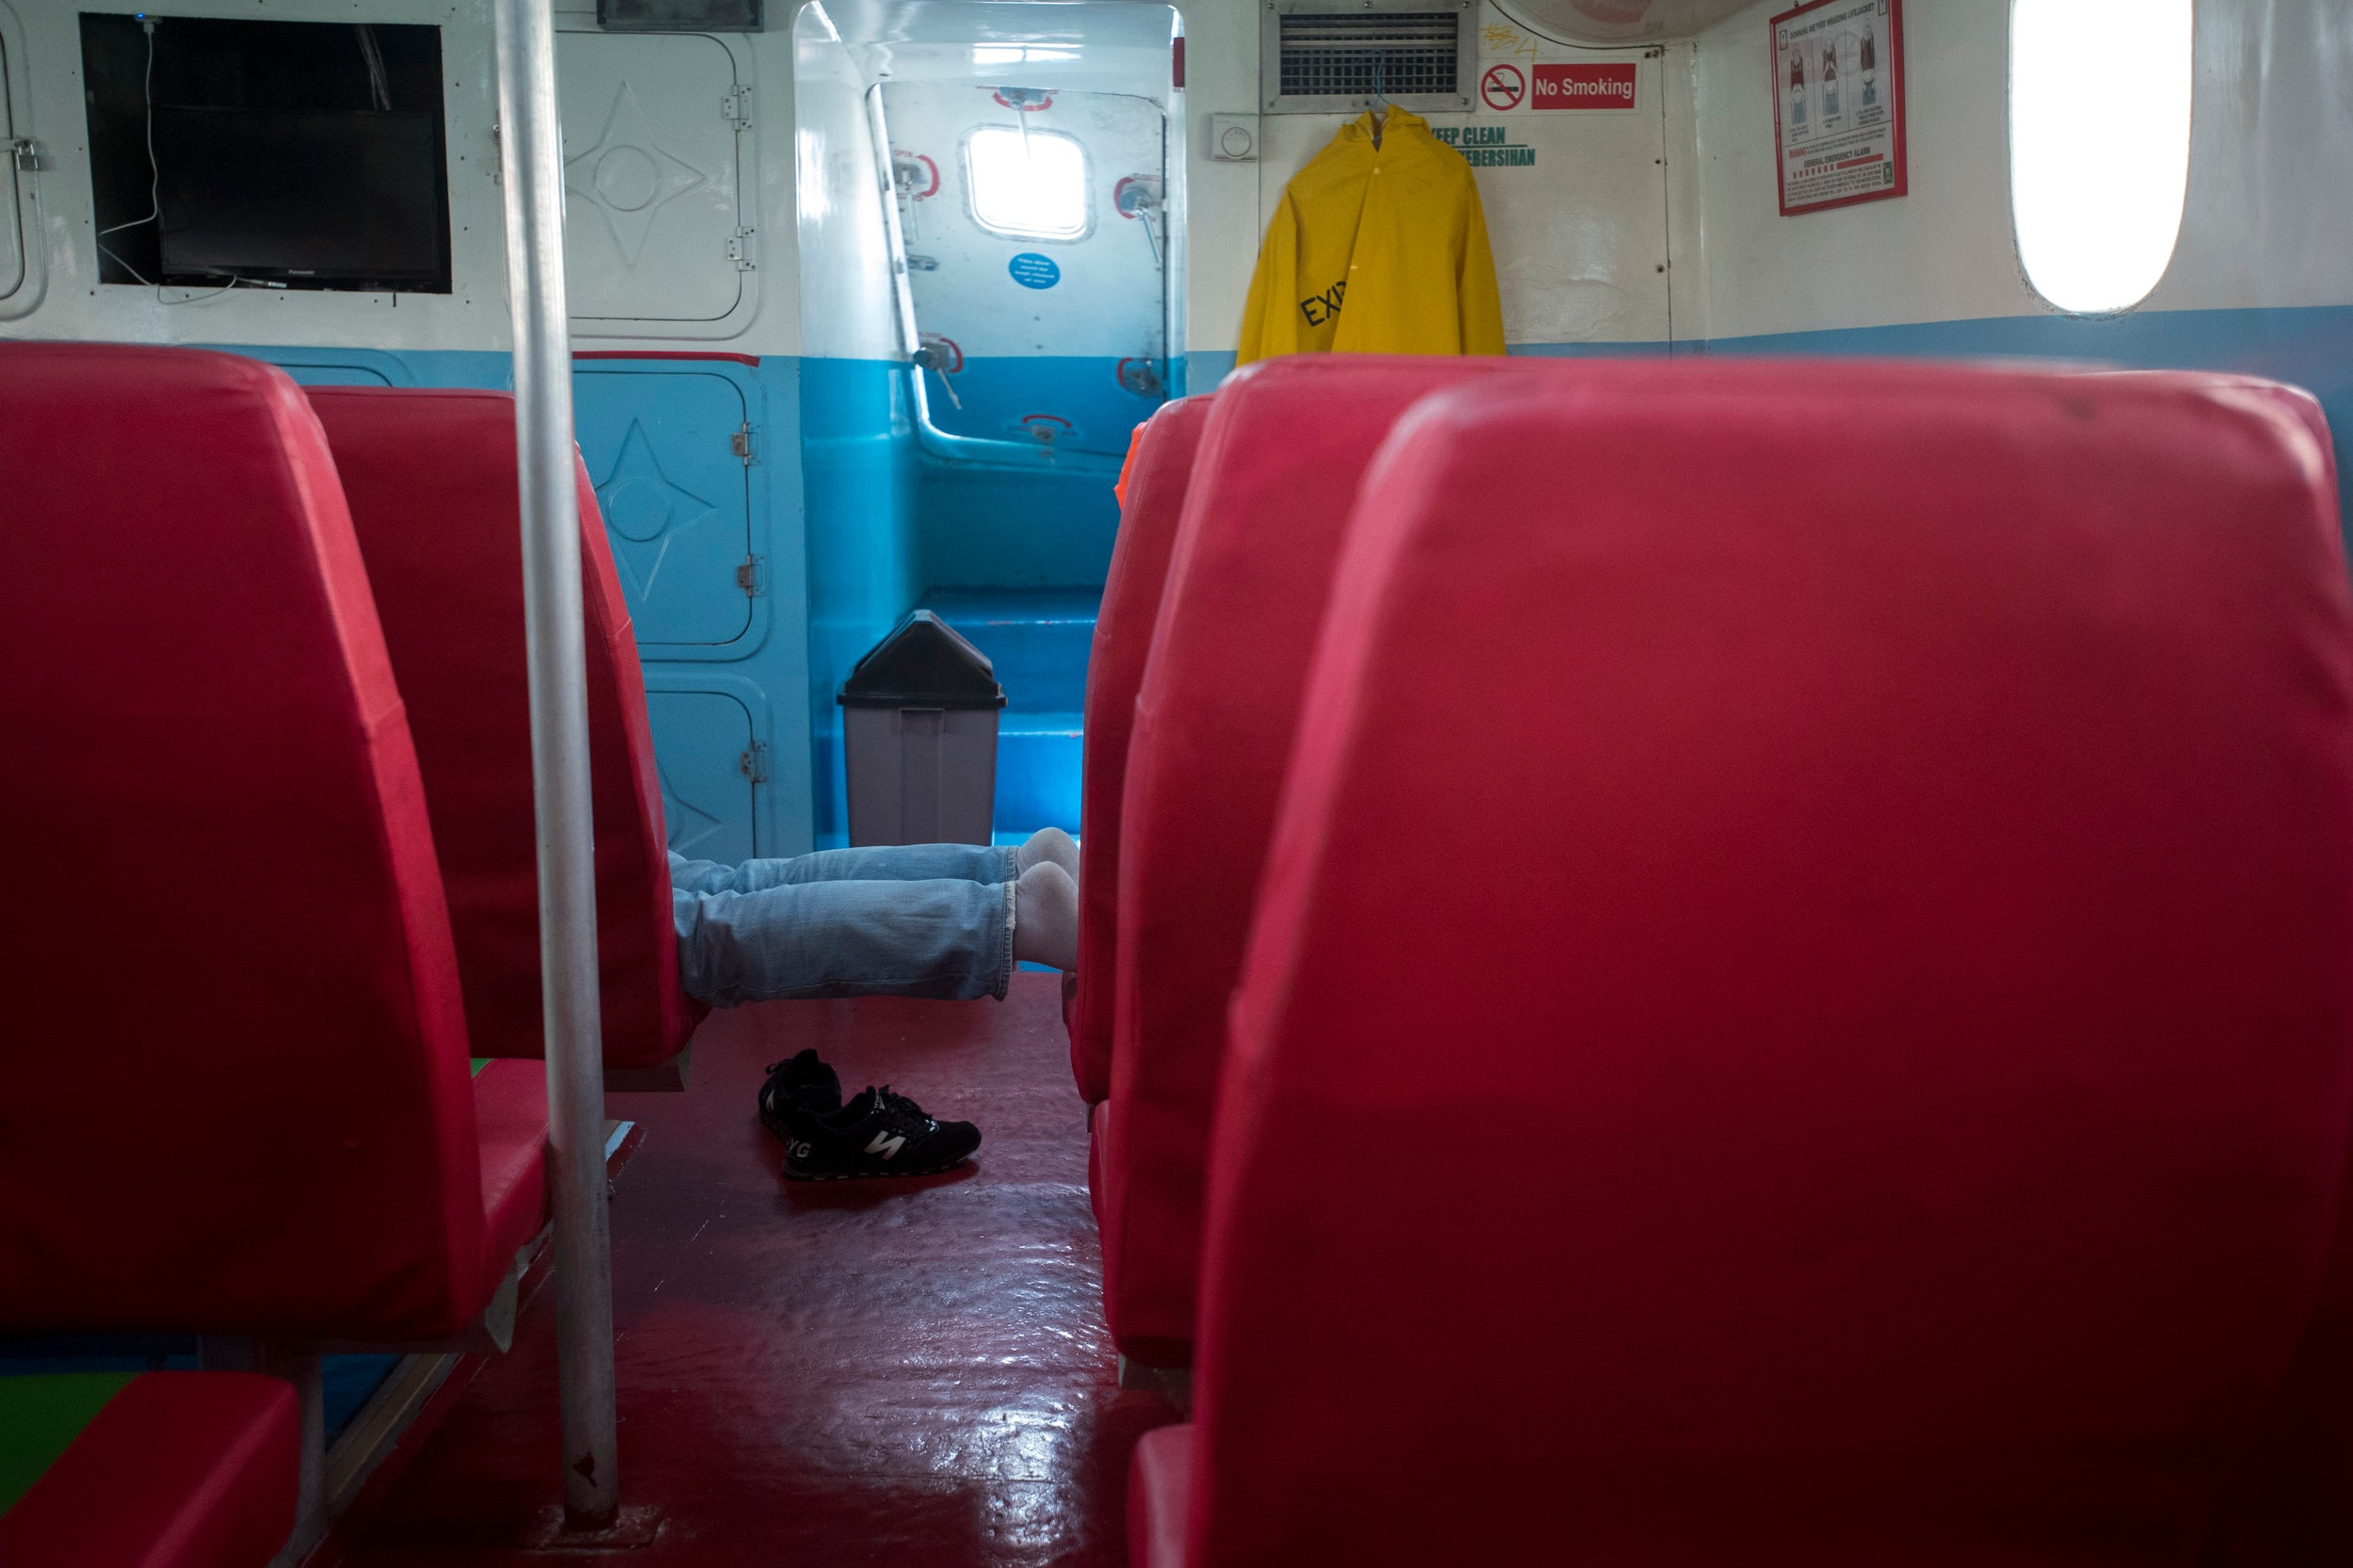 A passenger onboard a ship's tender en route from Tanah Merah Ferry Terminal to M/V Amusement World, March 15, 2018.